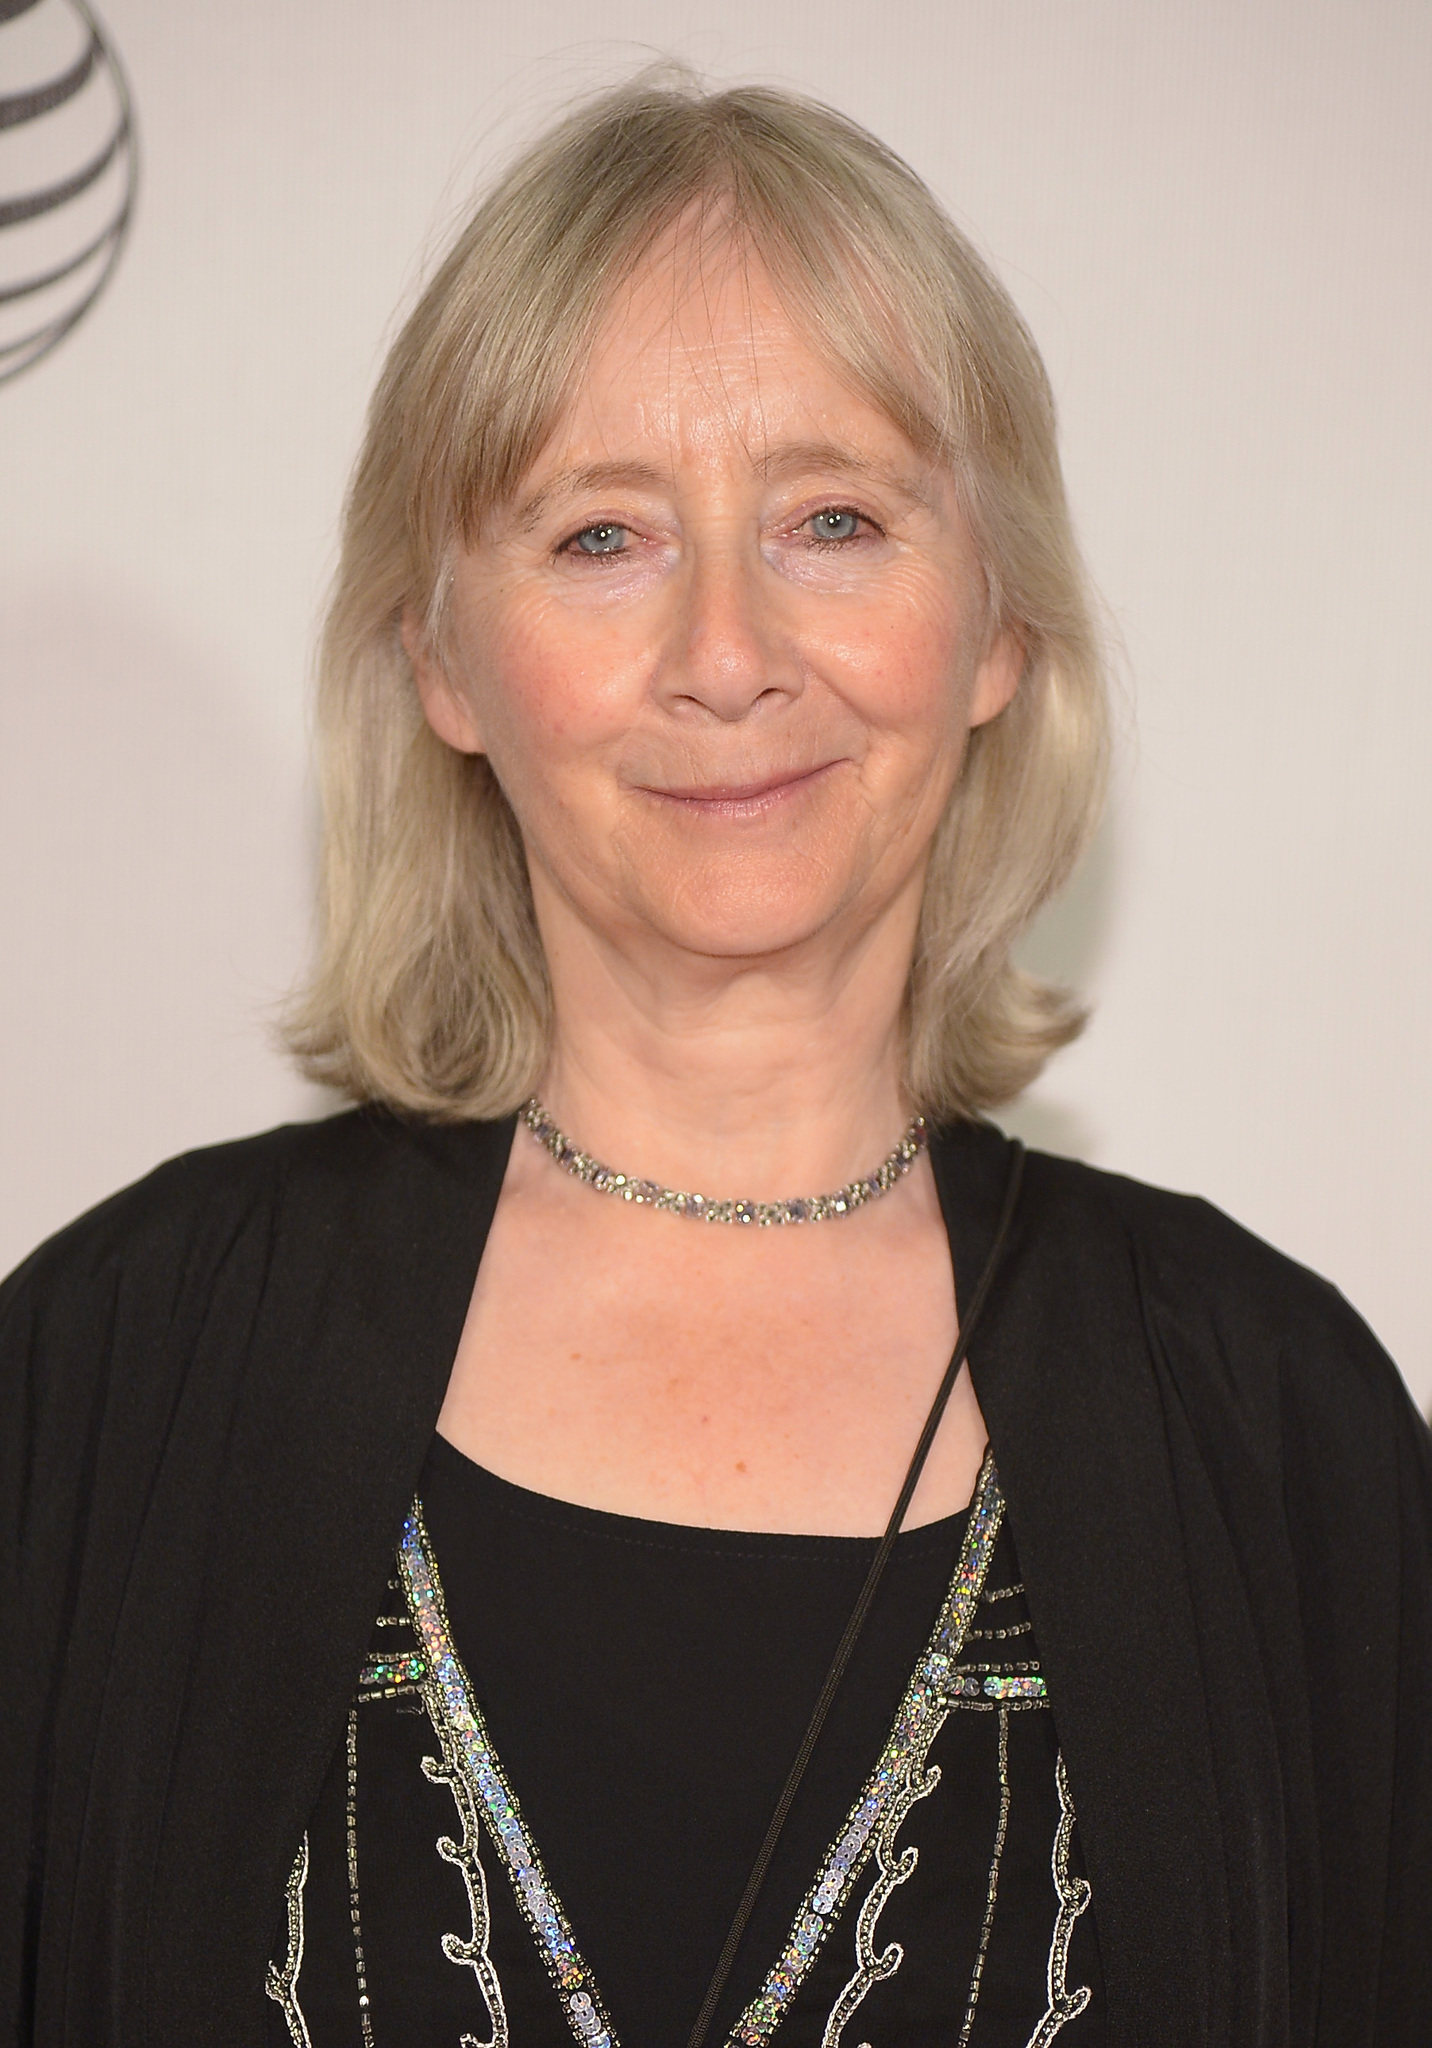 Gemma Jones (born 1942) nude photos 2019